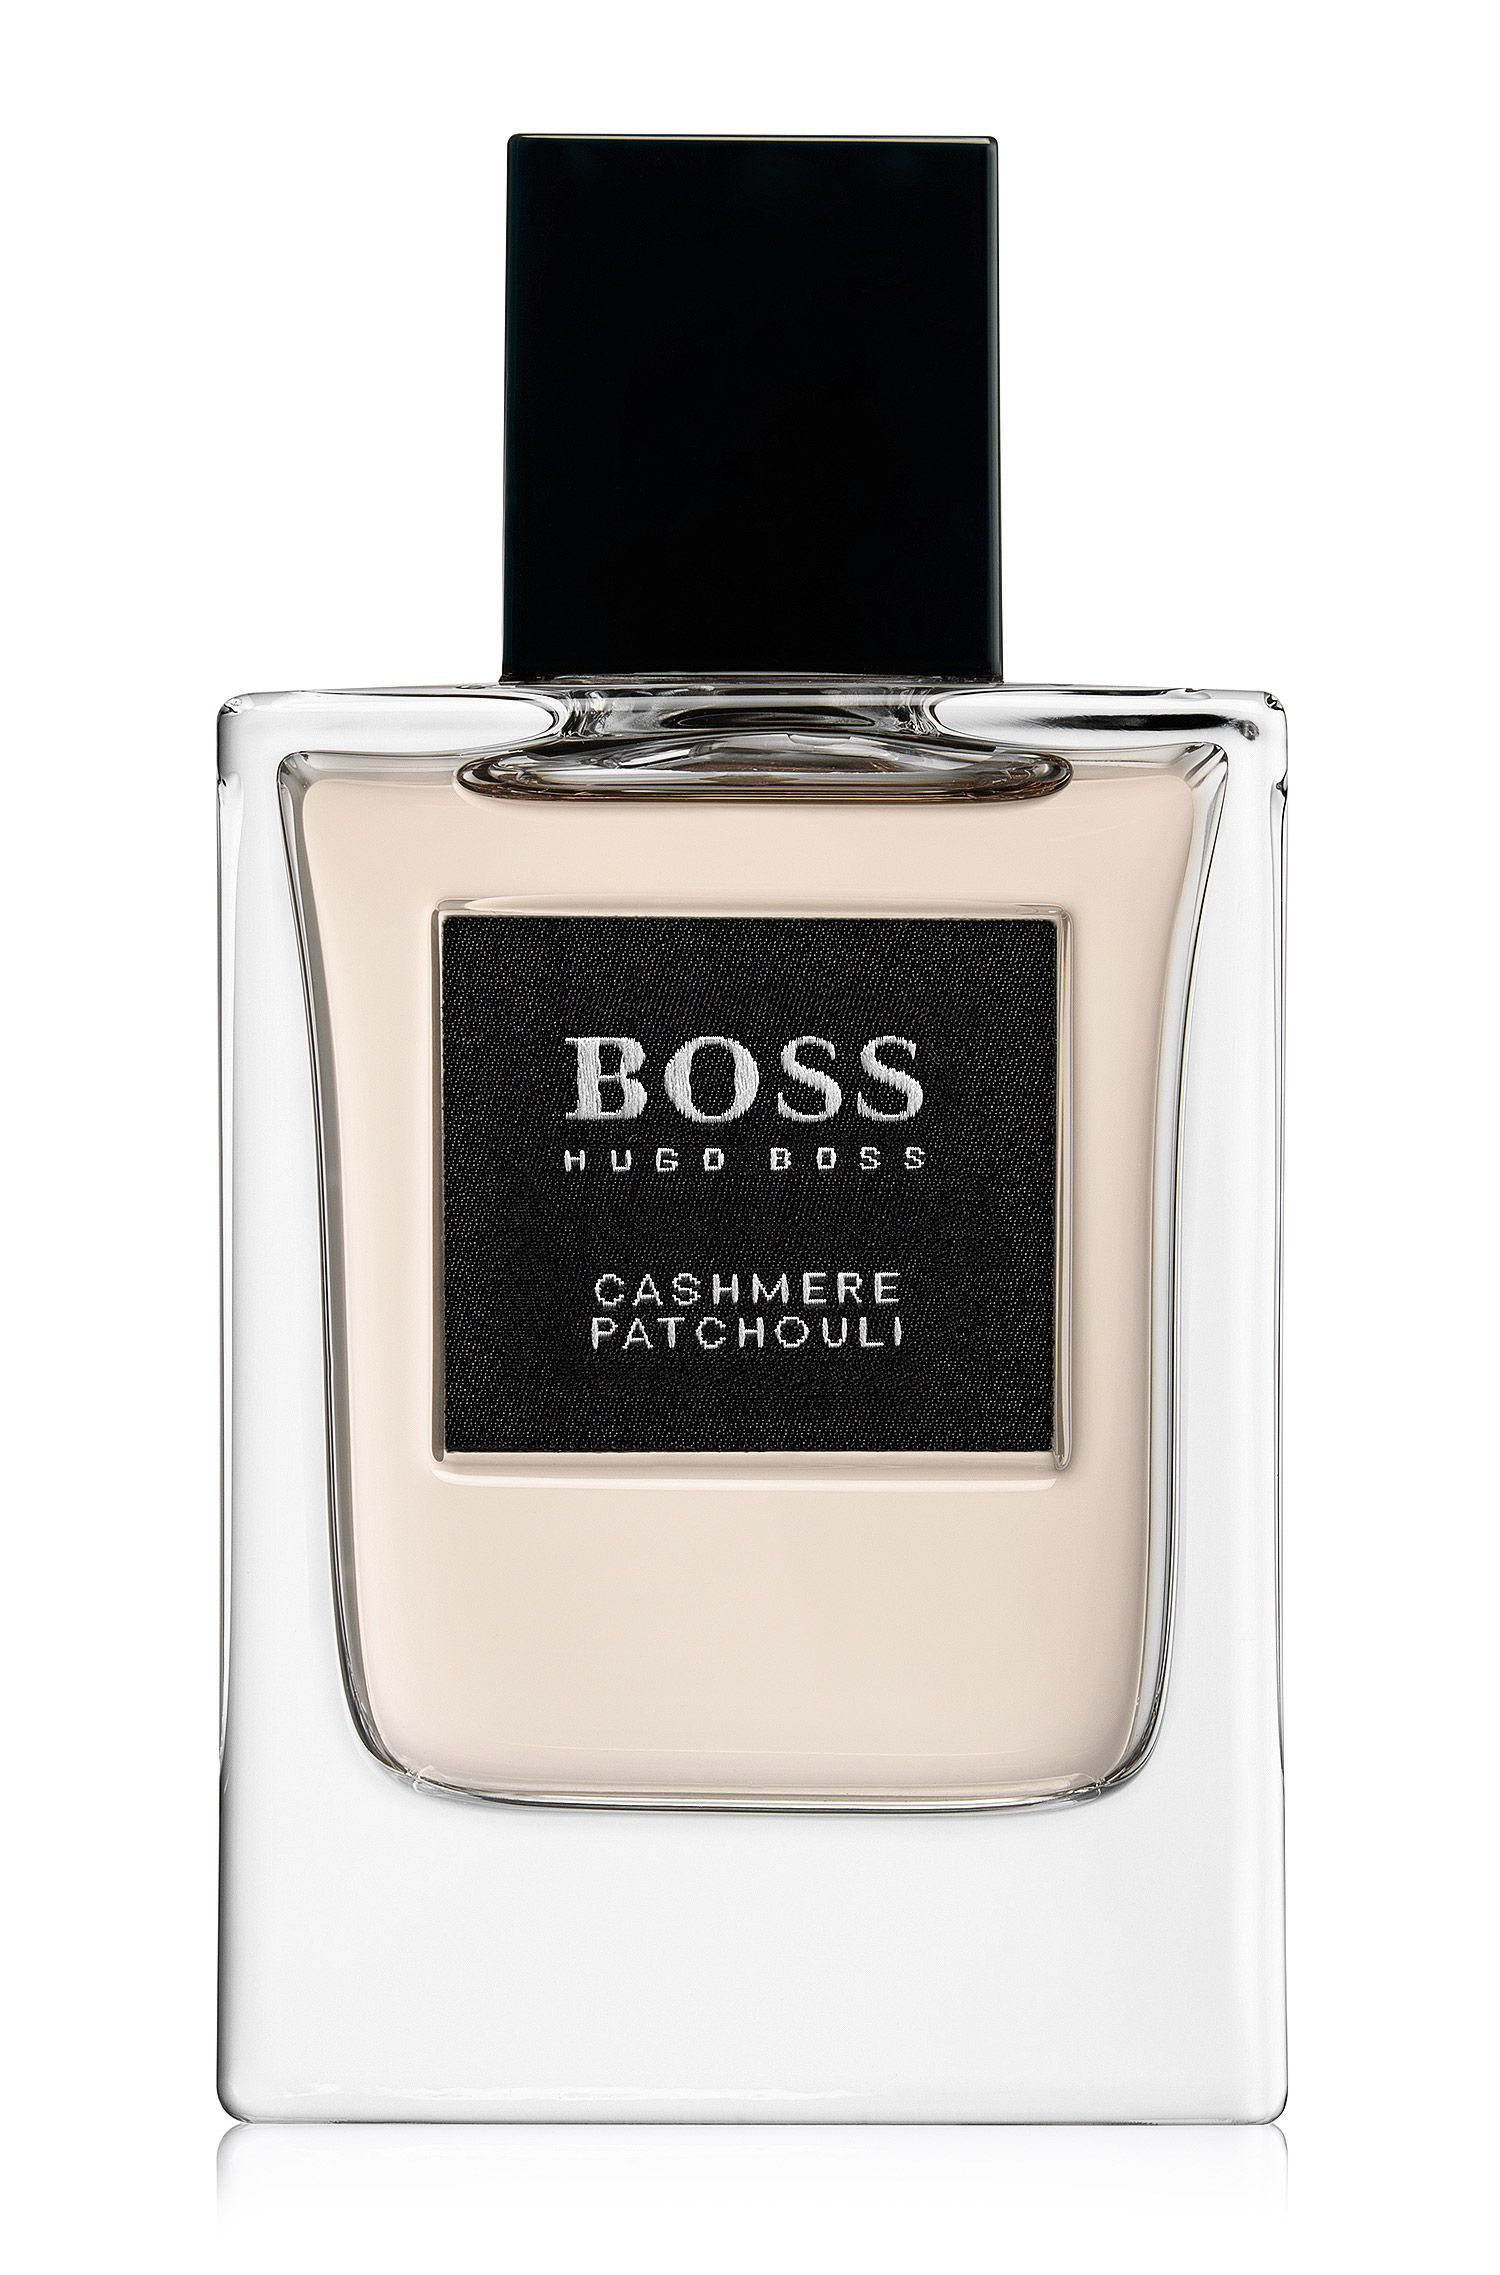 BOSS The Collection - Cashmere Patchouli Eau de Parfum